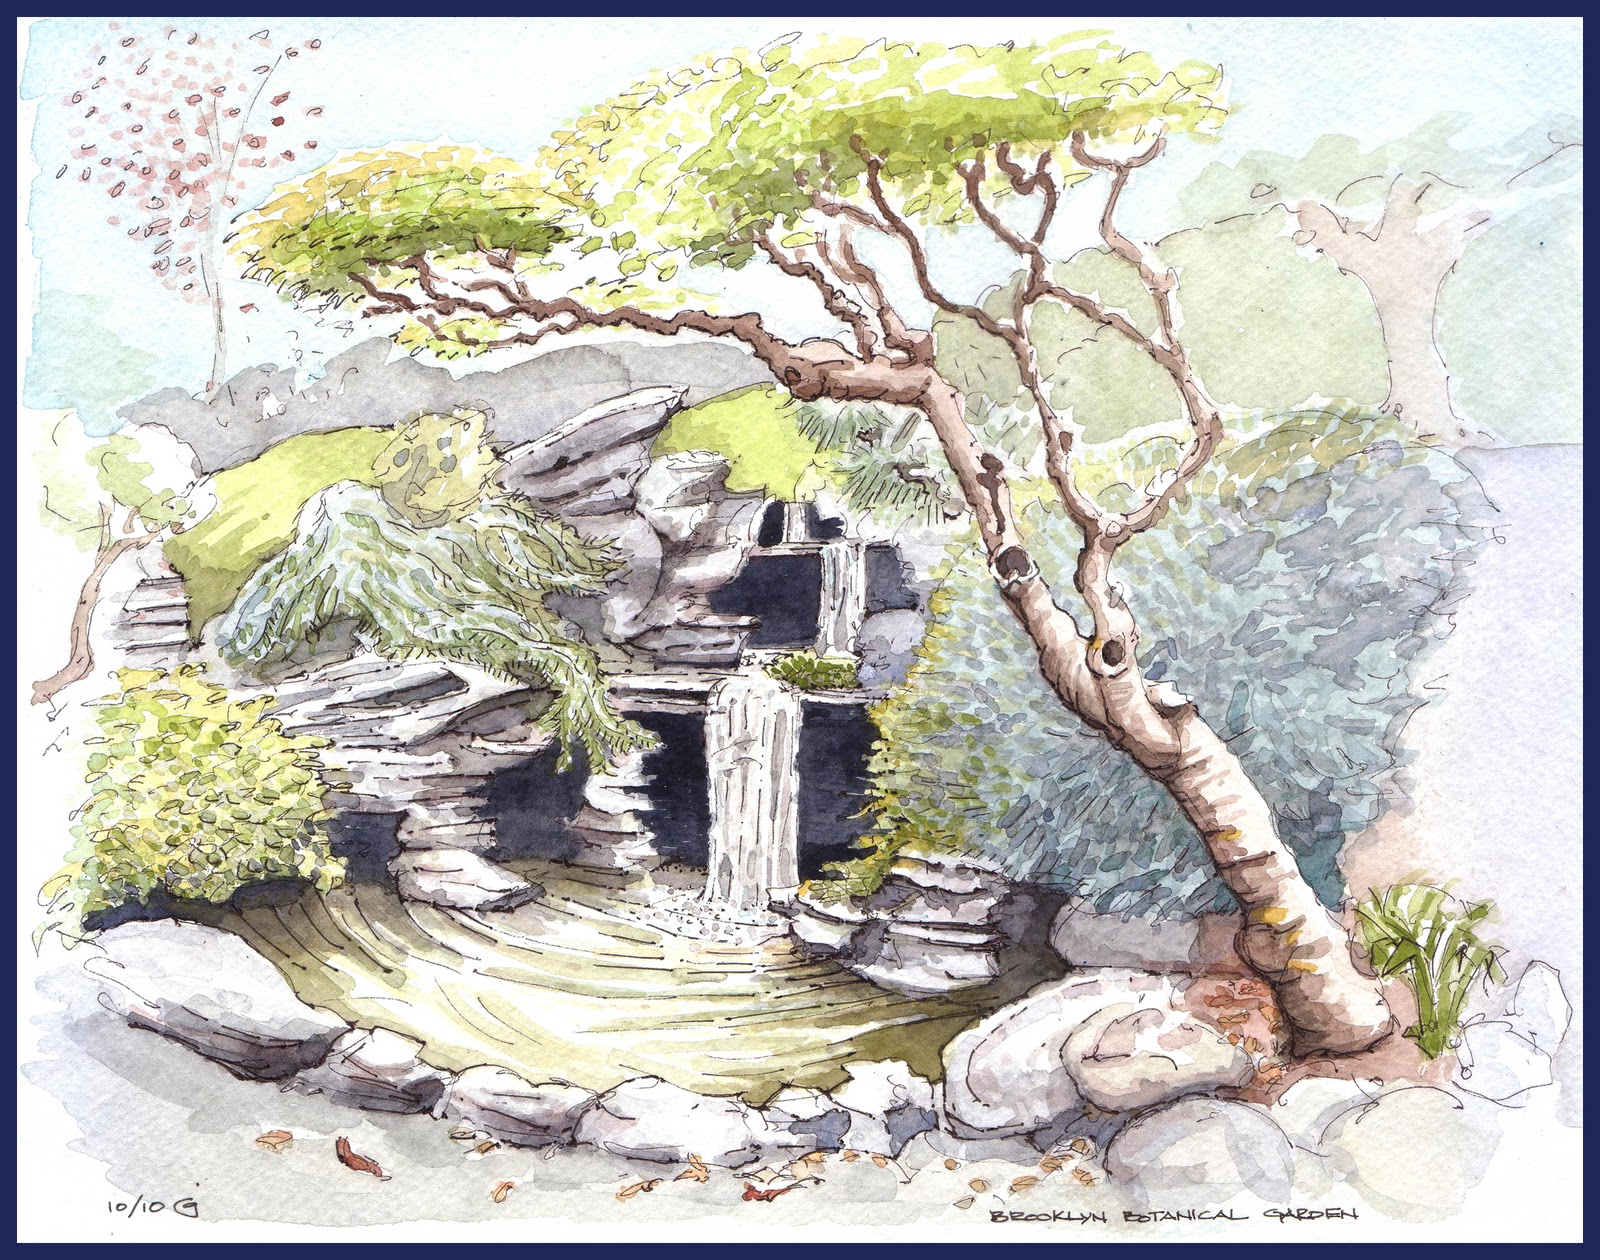 Park Slope Sketch: The Falls at the Japanese Garden